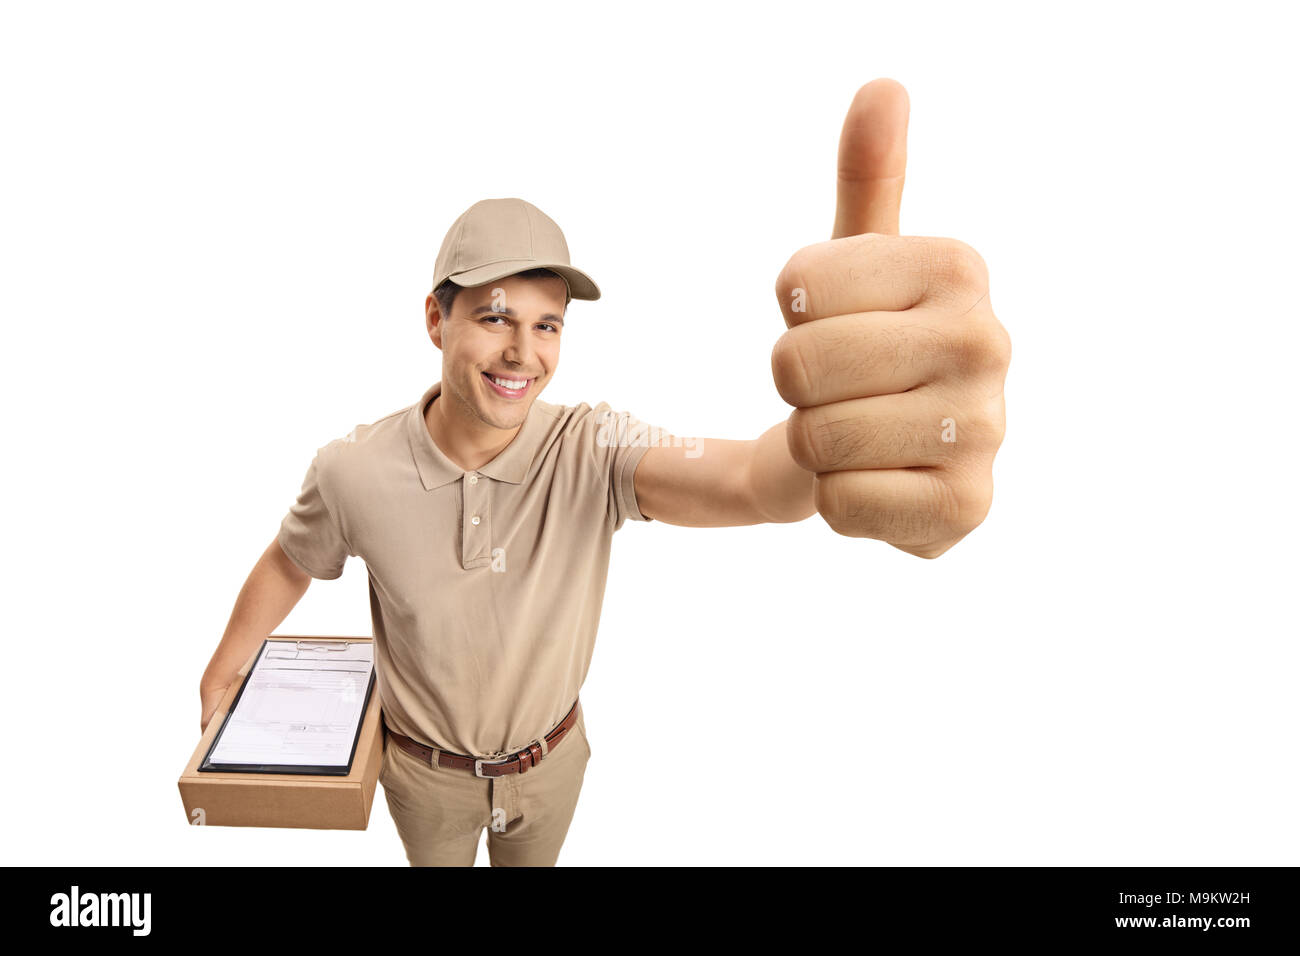 Delivery man making a thumb up gesture isolated on white background - Stock Image